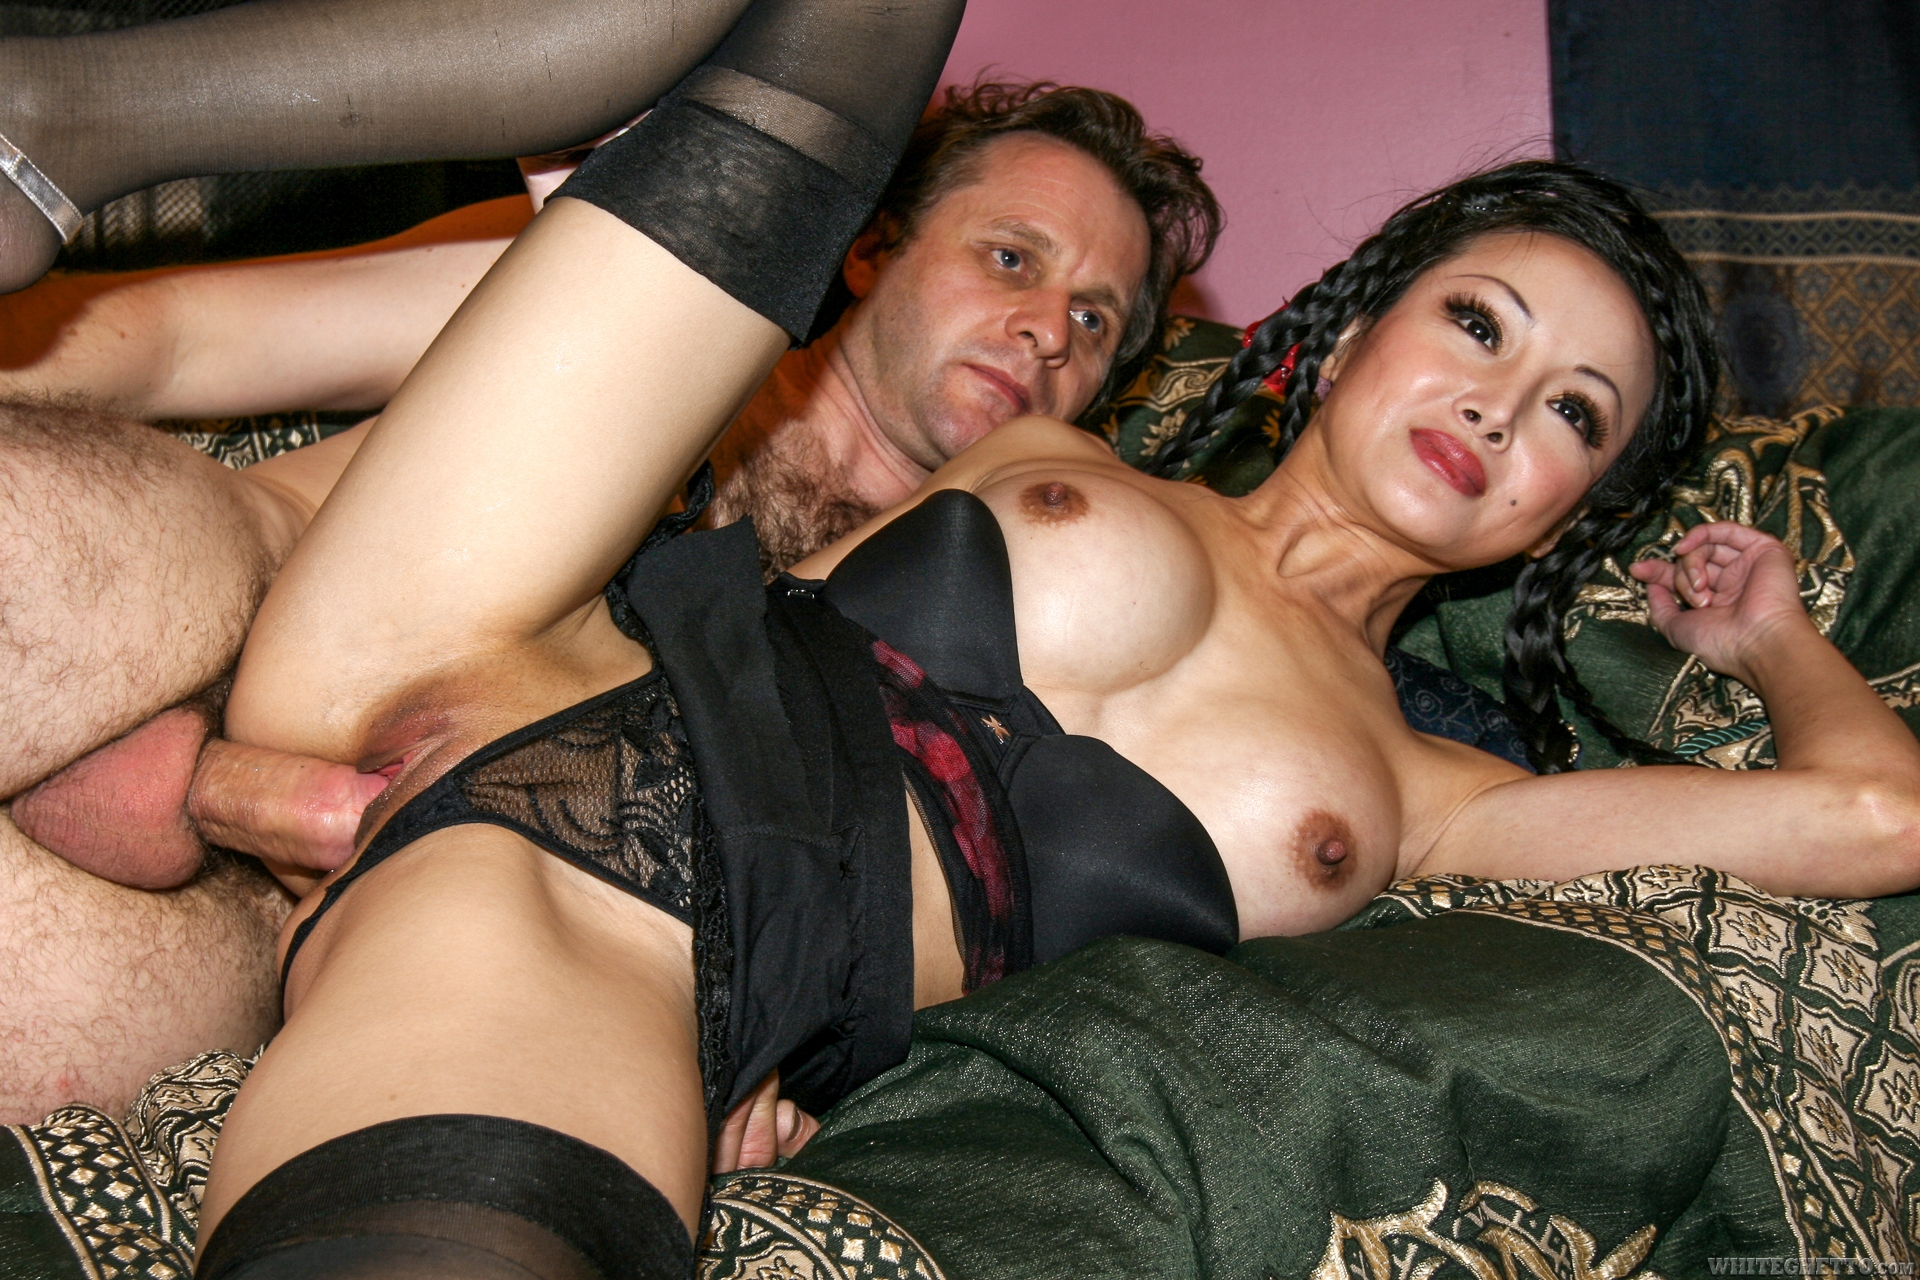 Ange venus billy glide